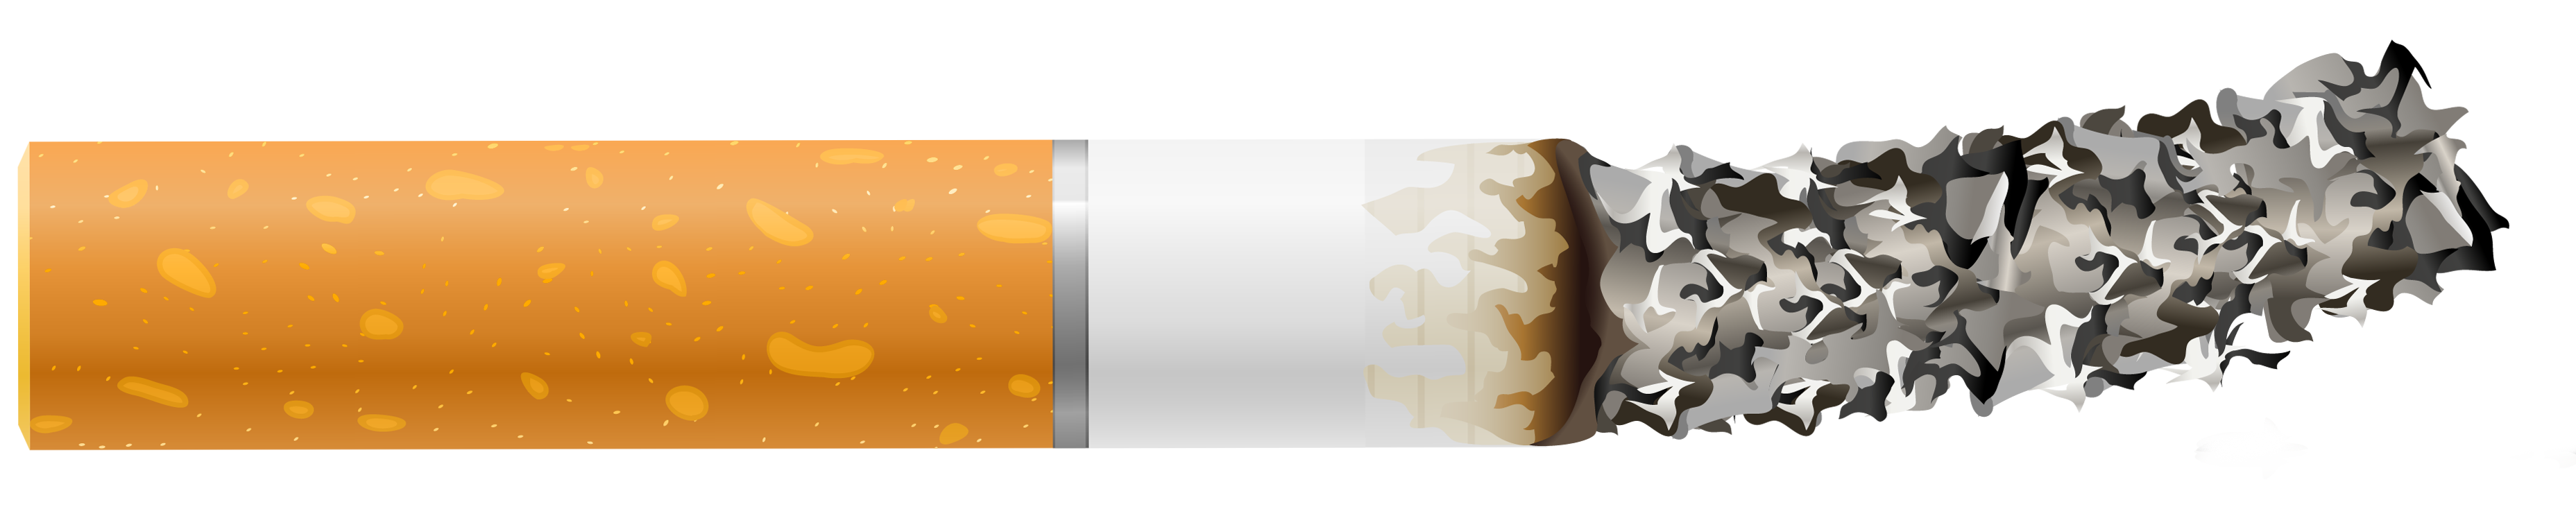 Cigarette Butt with Ash PNG Clipart.